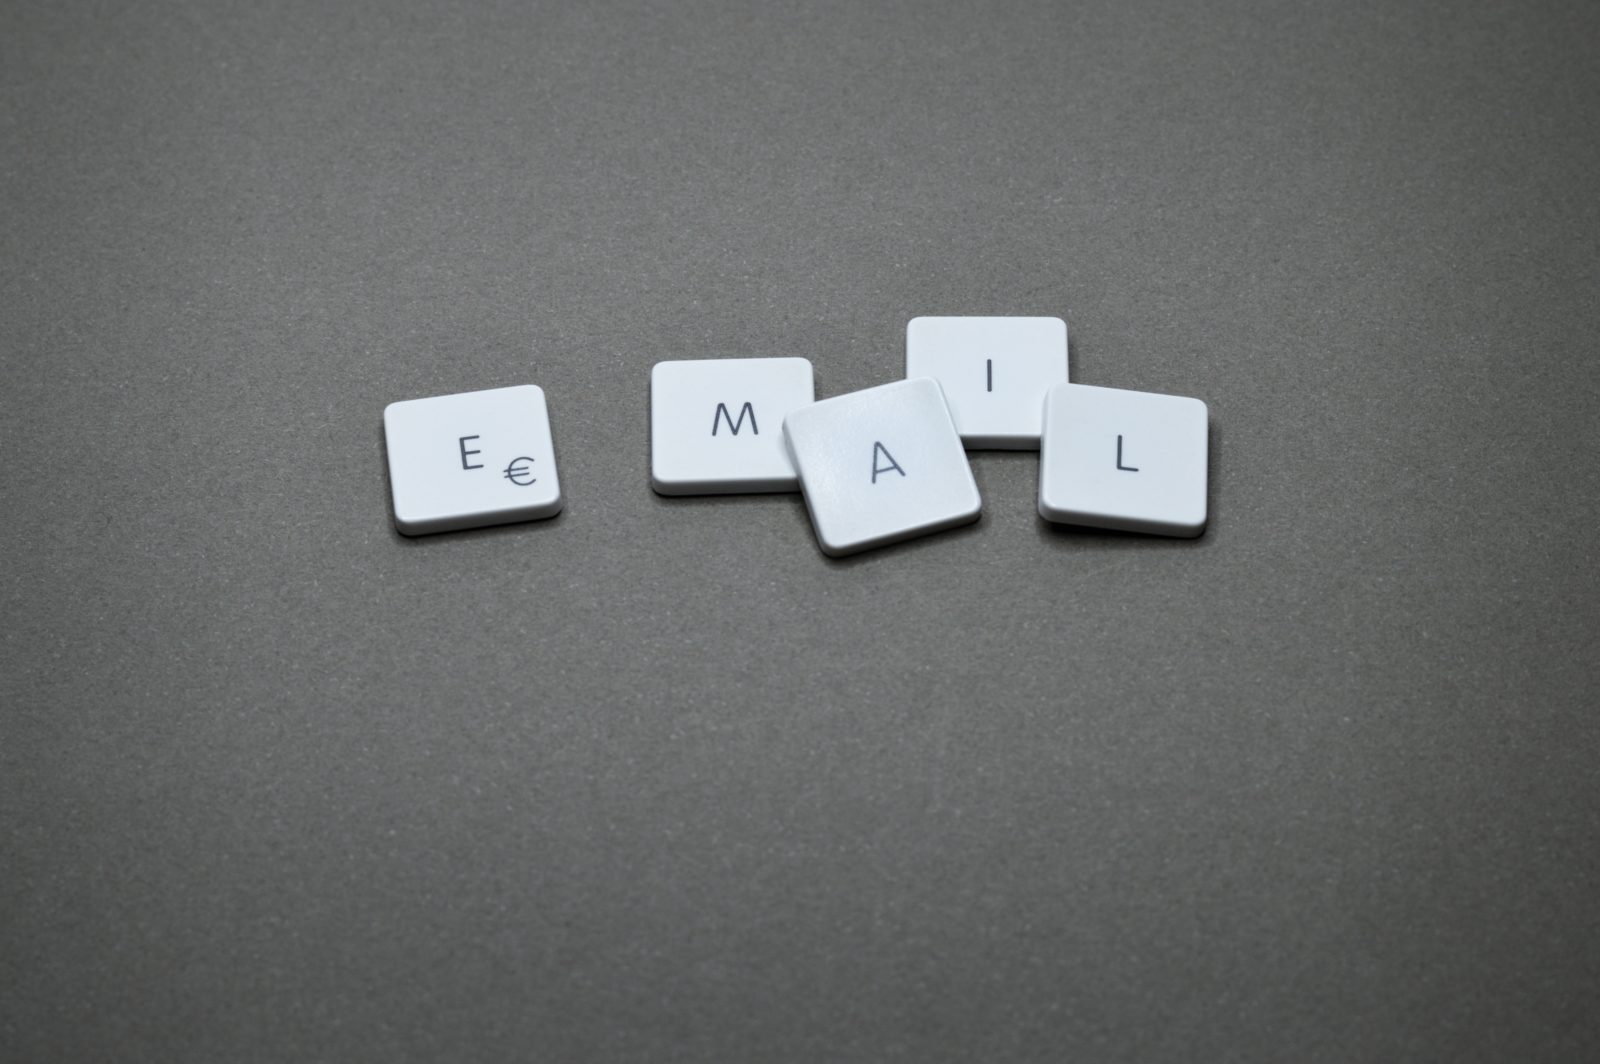 Email marketing tips for small businesses showing white tiles that spell email on a grey surface